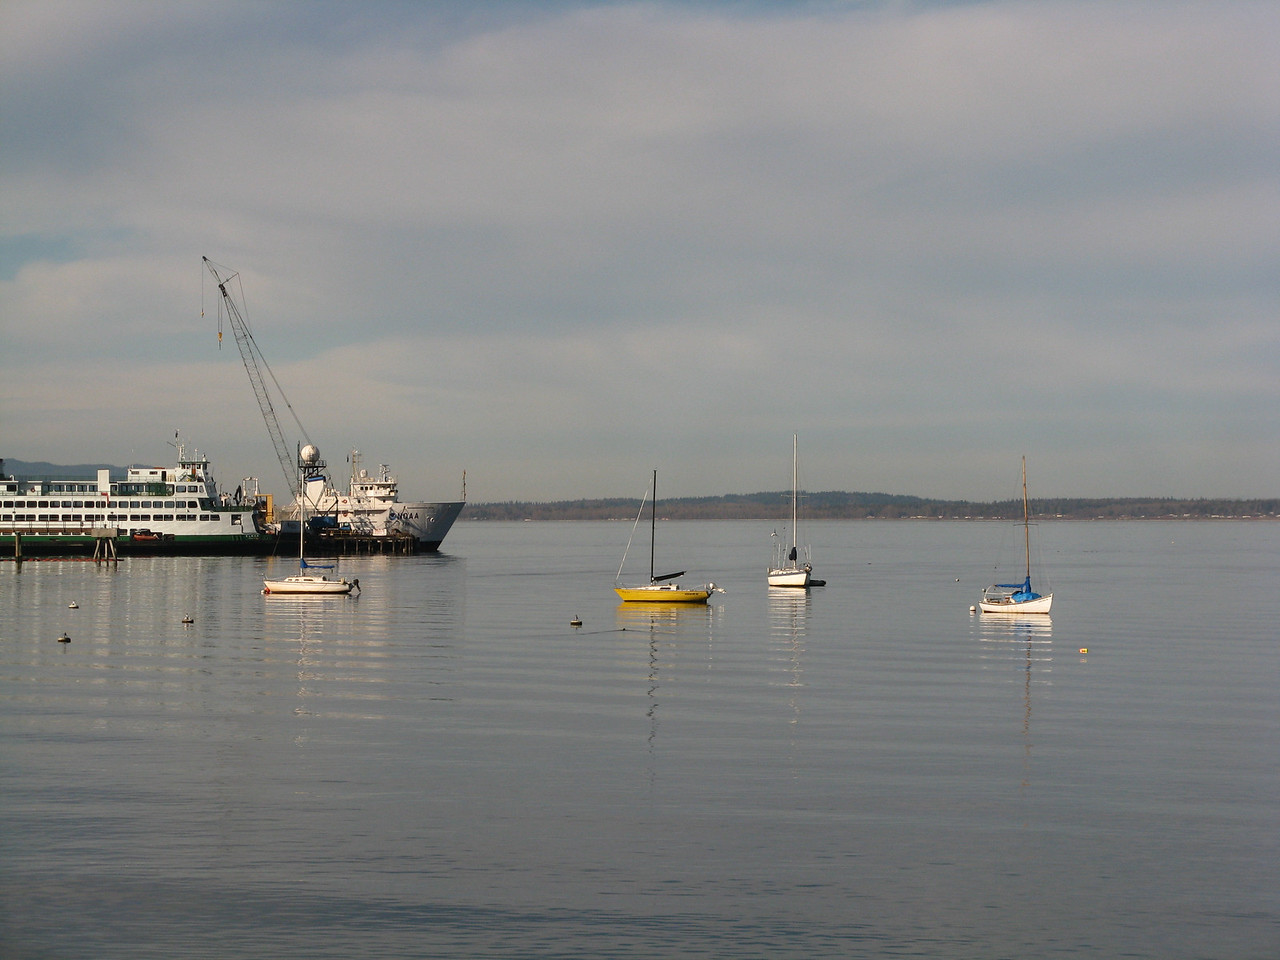 The bay near Bellingham.  The ferry appeared to be landed at a maintenance dock.